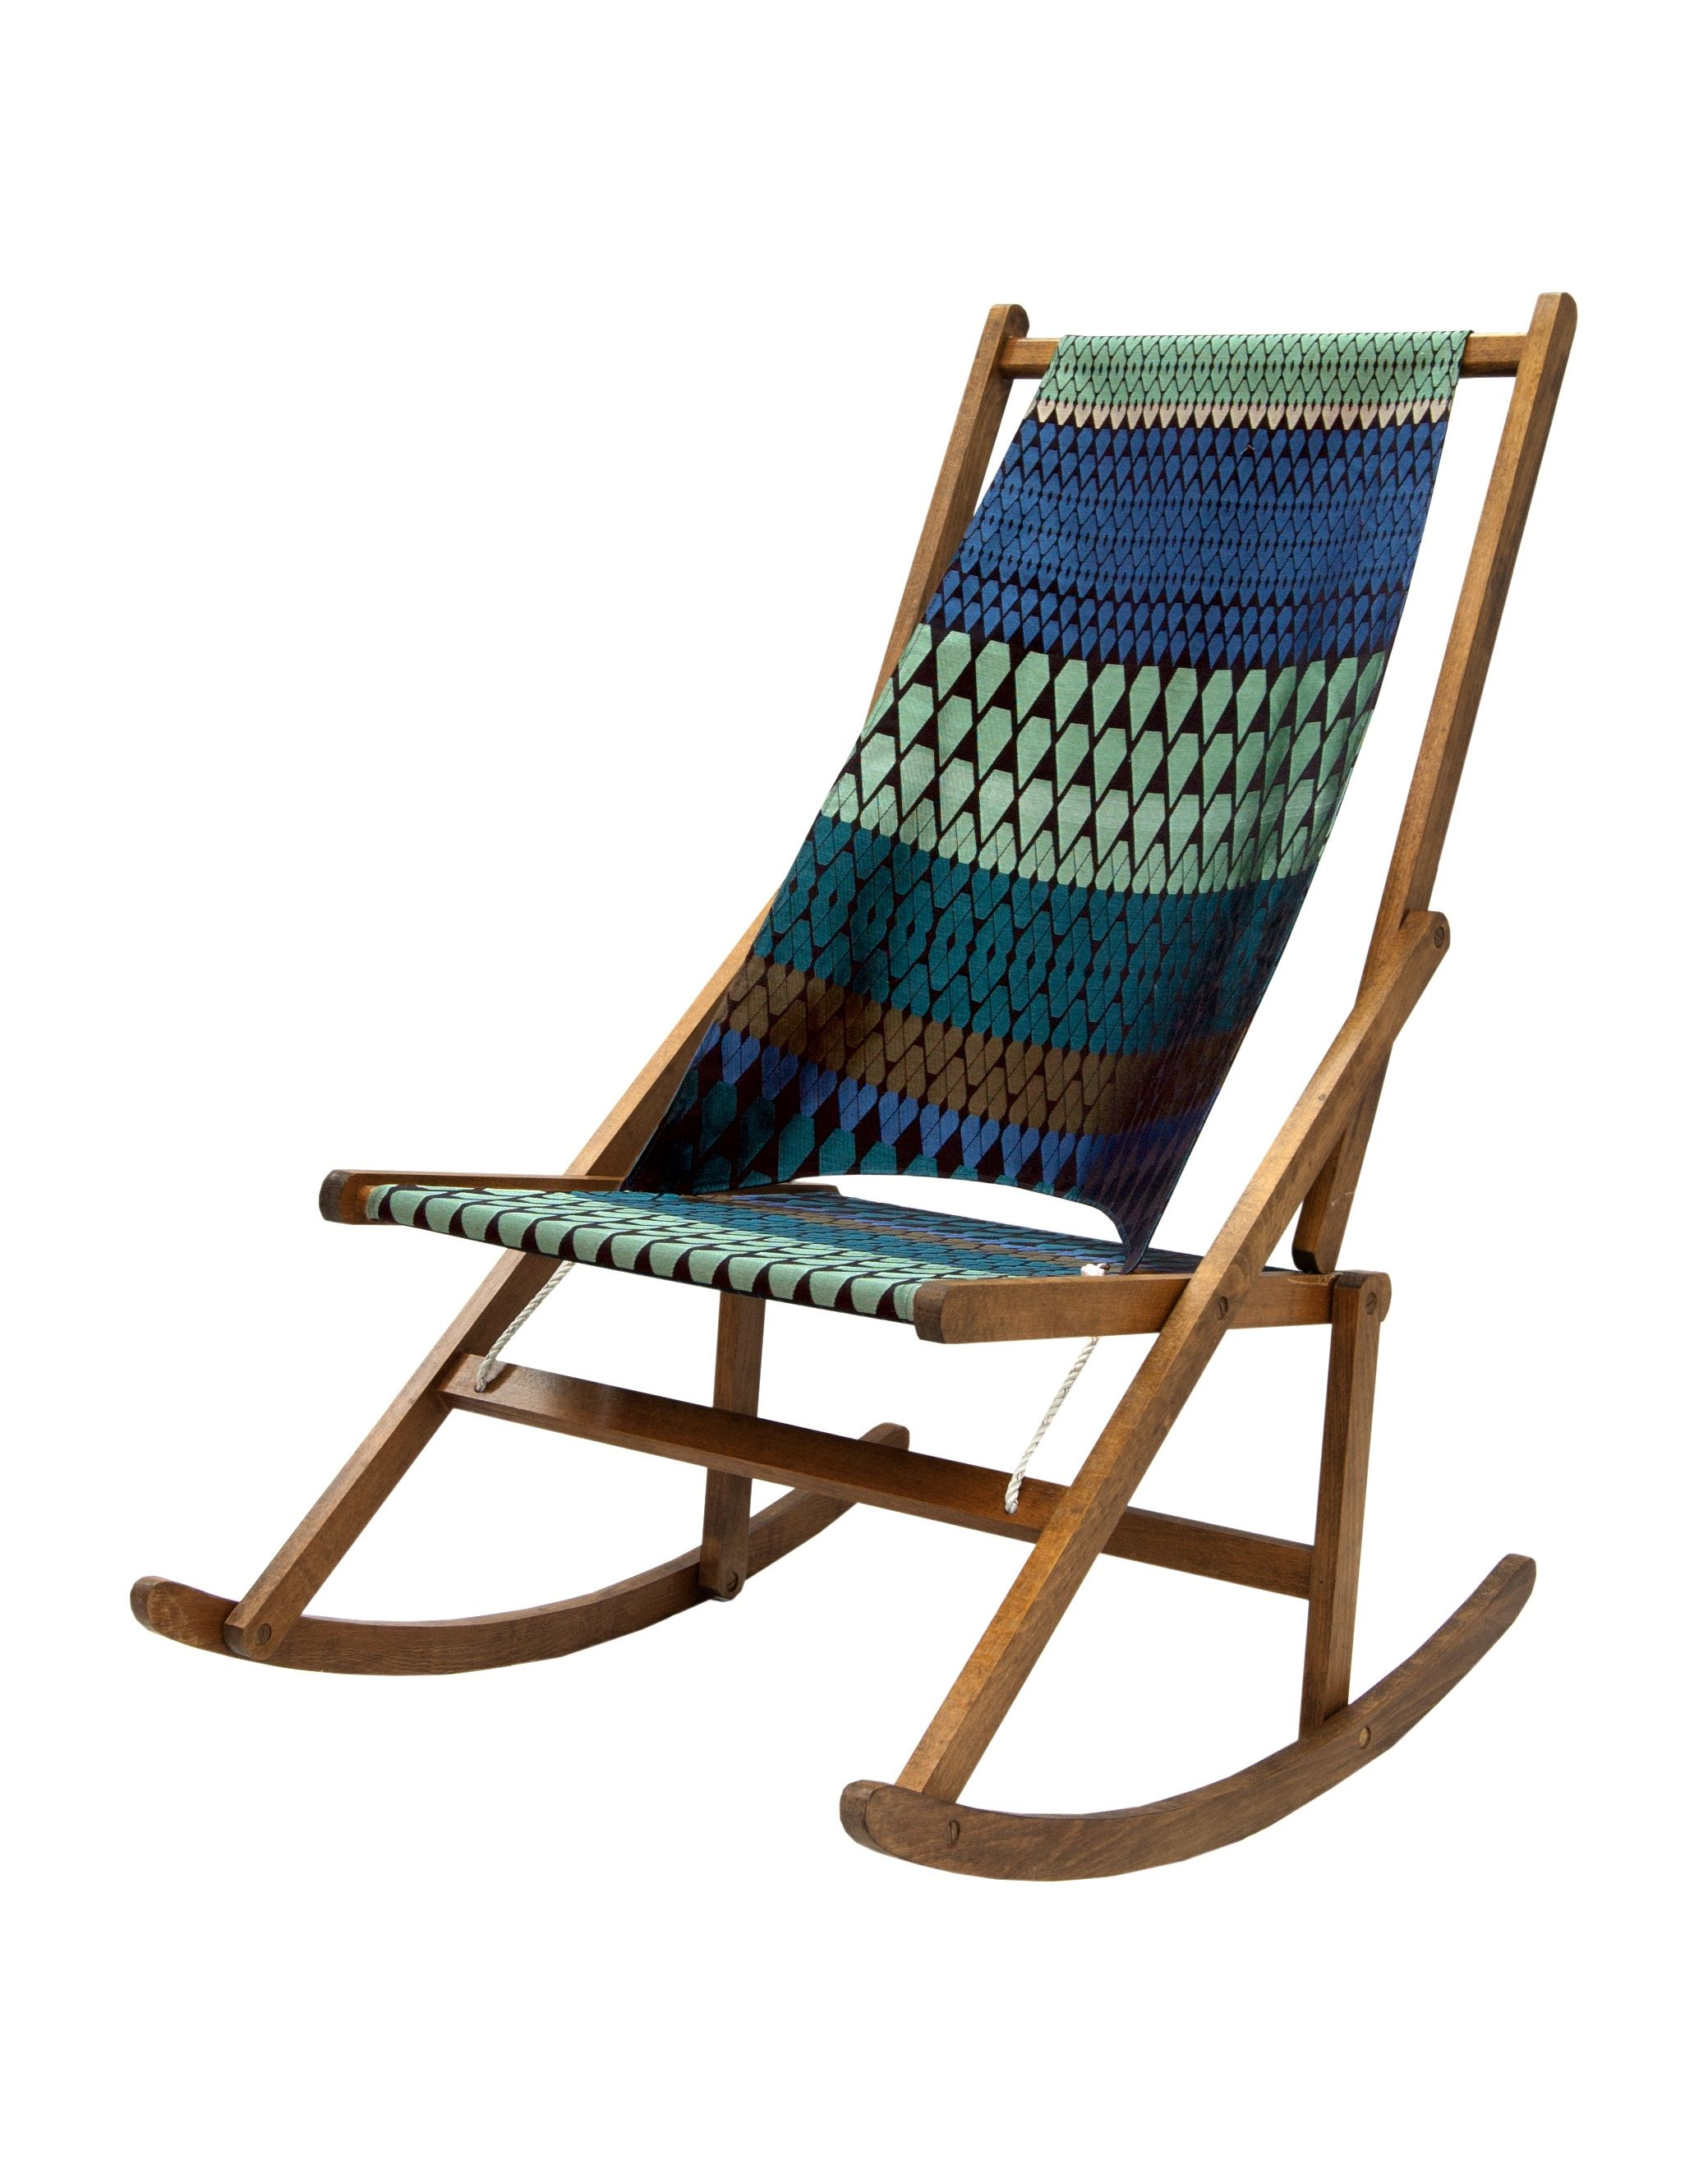 WANT ONE Folding Rocking Chair made by Wawa